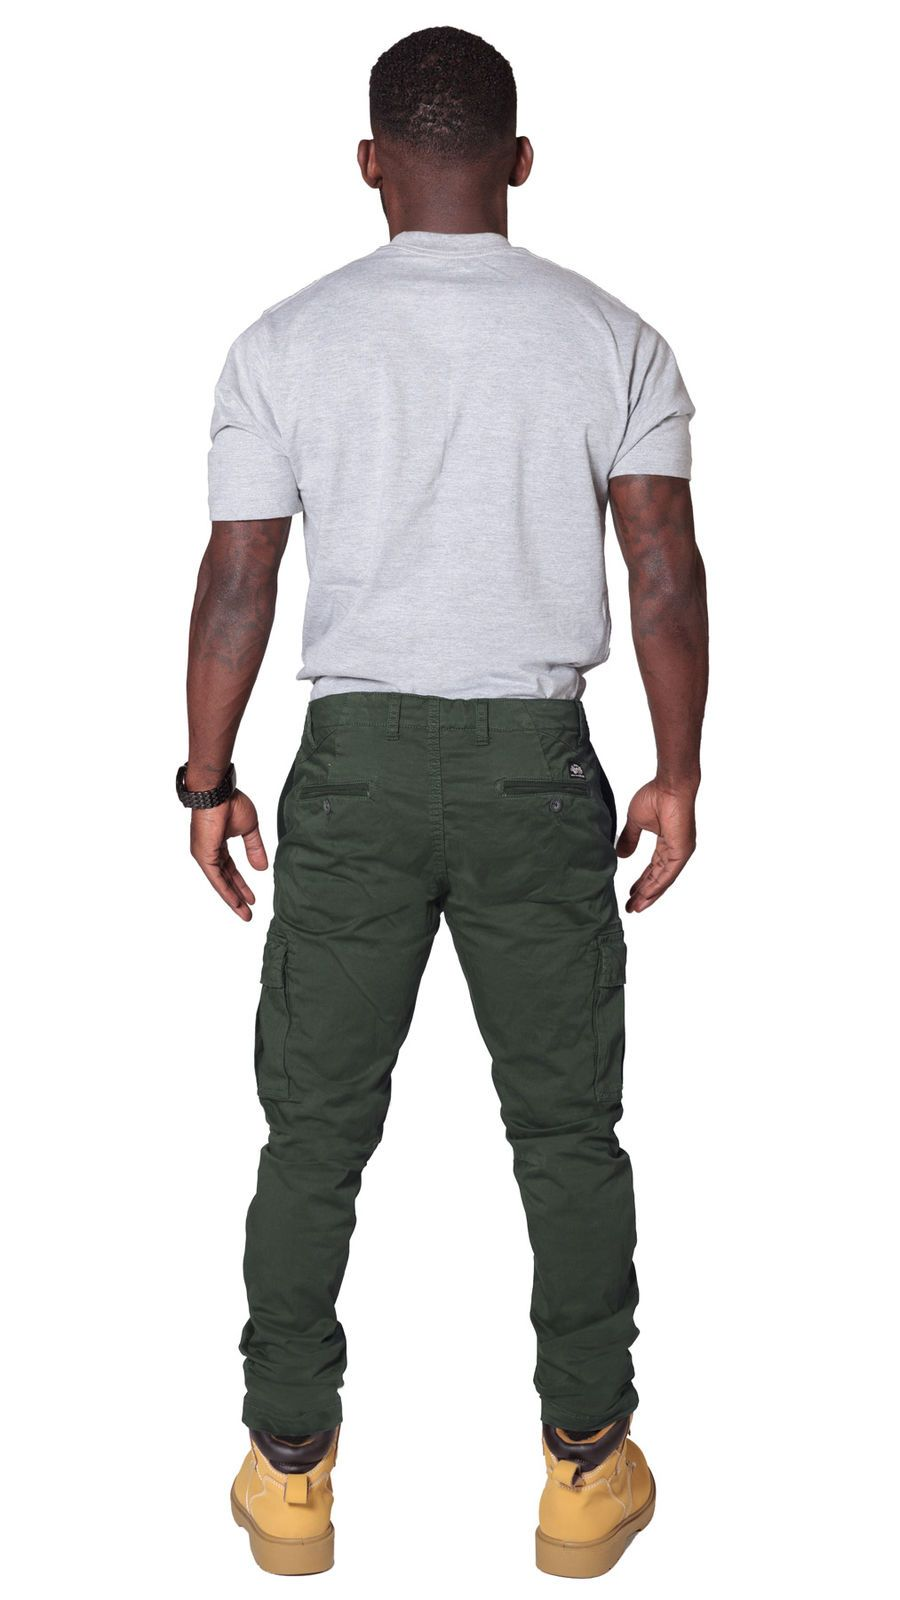 Rear view of 'Pete' style, casual cotton mix cargo trousers in khaki-green with view of back pockets from Dungarees Online.